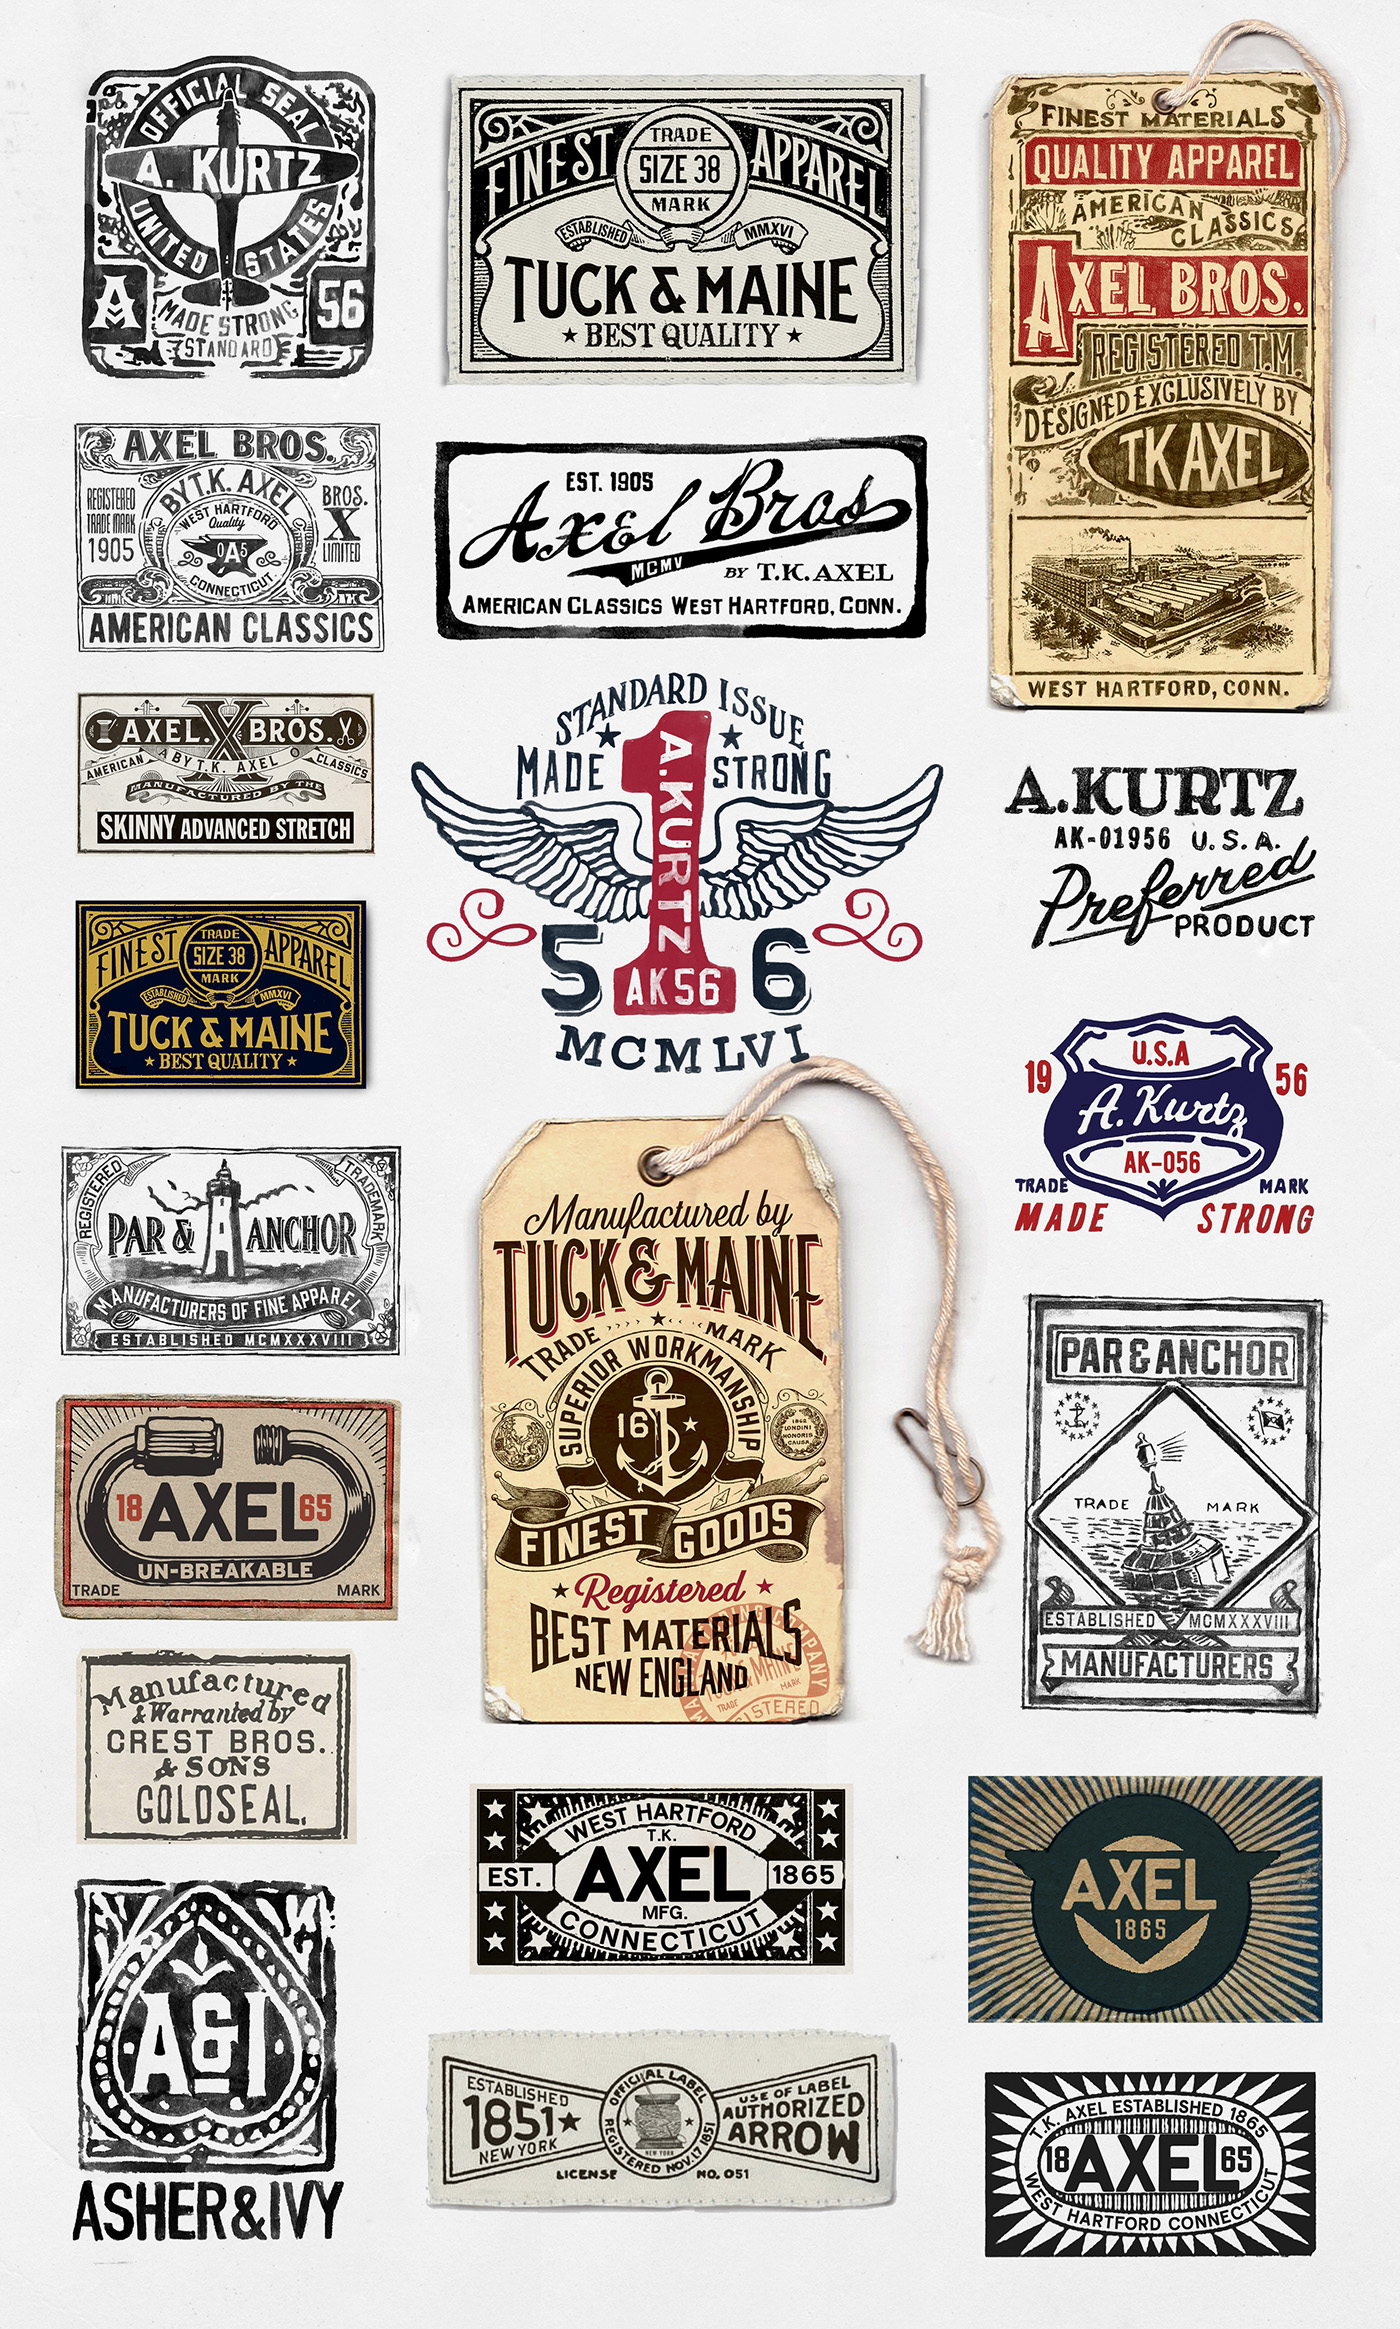 images This Instagram Account Tracks Vintage Clothing Labels—and the Result Is OddlyFascinating